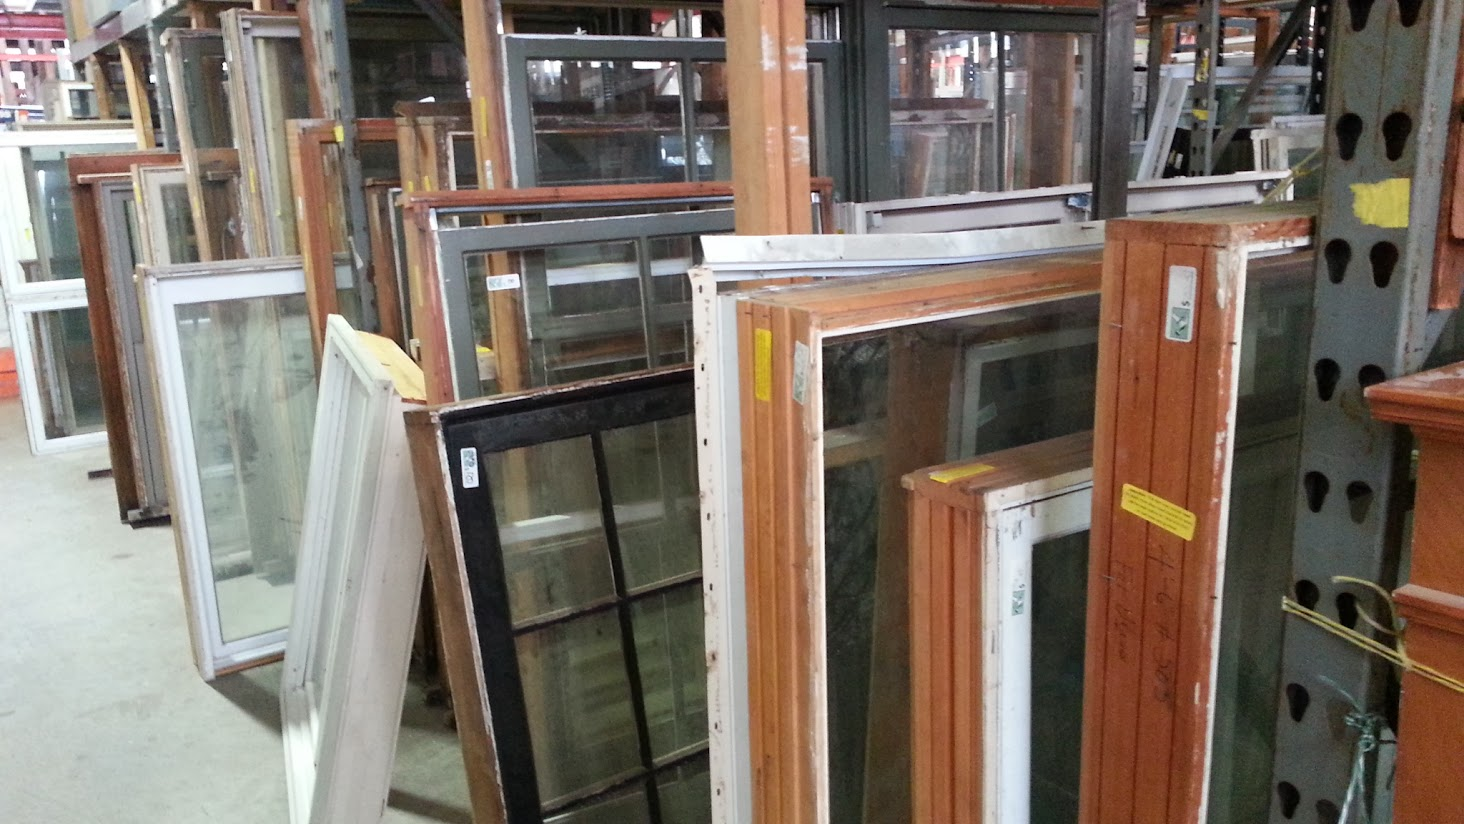 a row of used windows in the Rebuilding Center warehouse